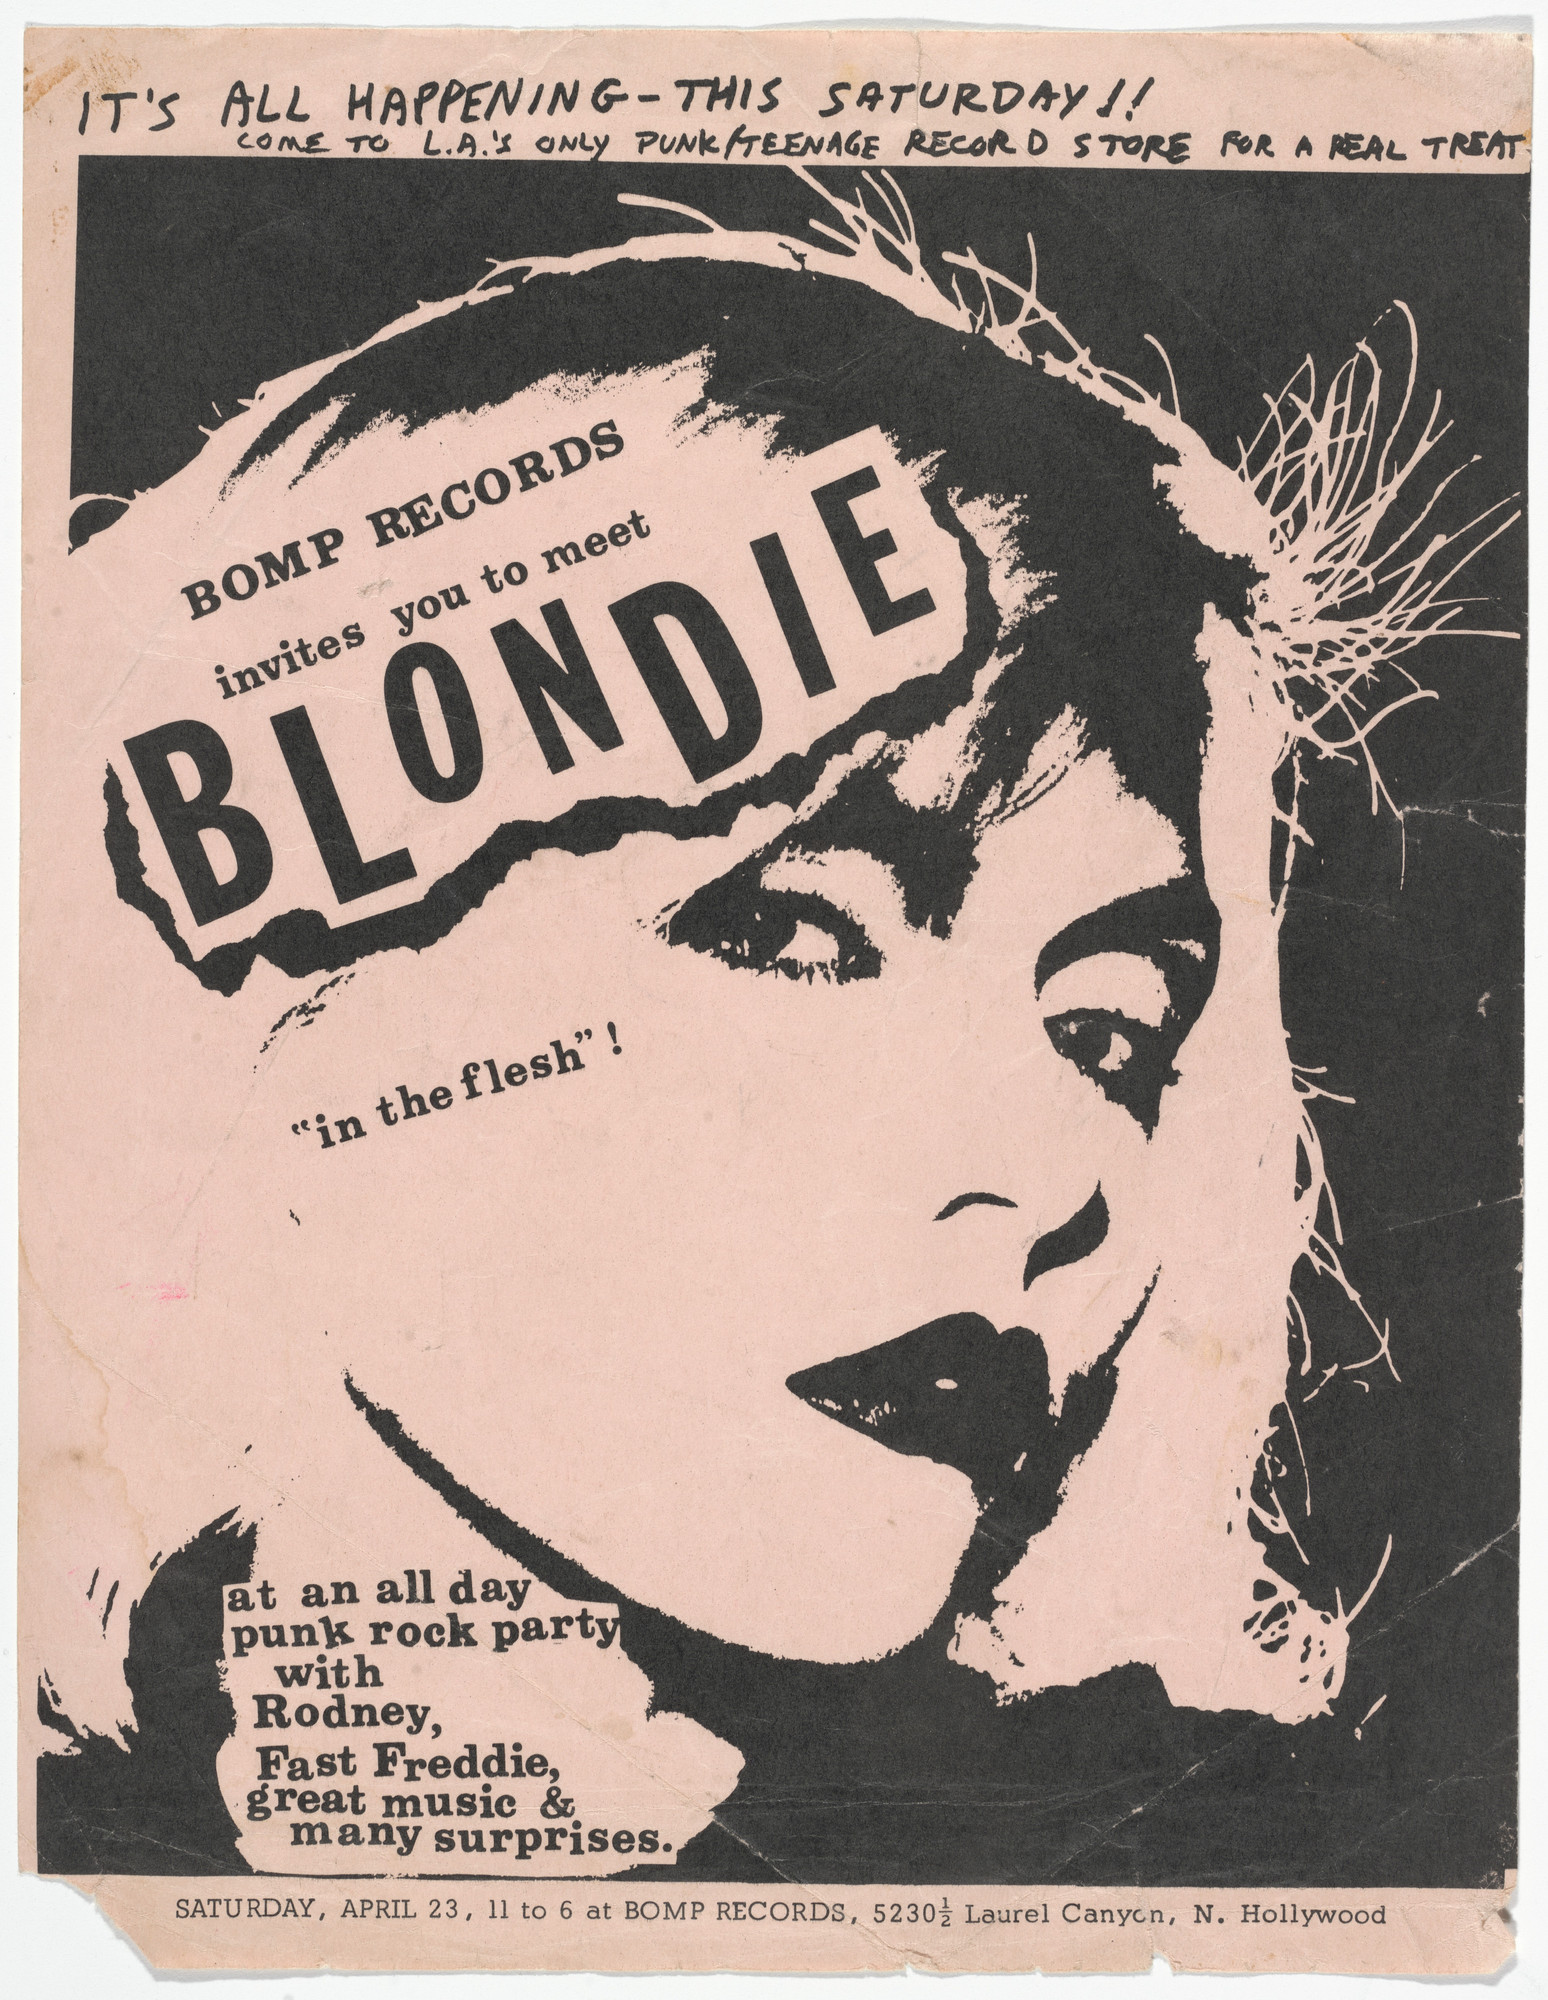 Unknown Designer. Blondie (Flyer for a punk rock party sponsored by Bump Records, Hollywood). 1977 | MoMA